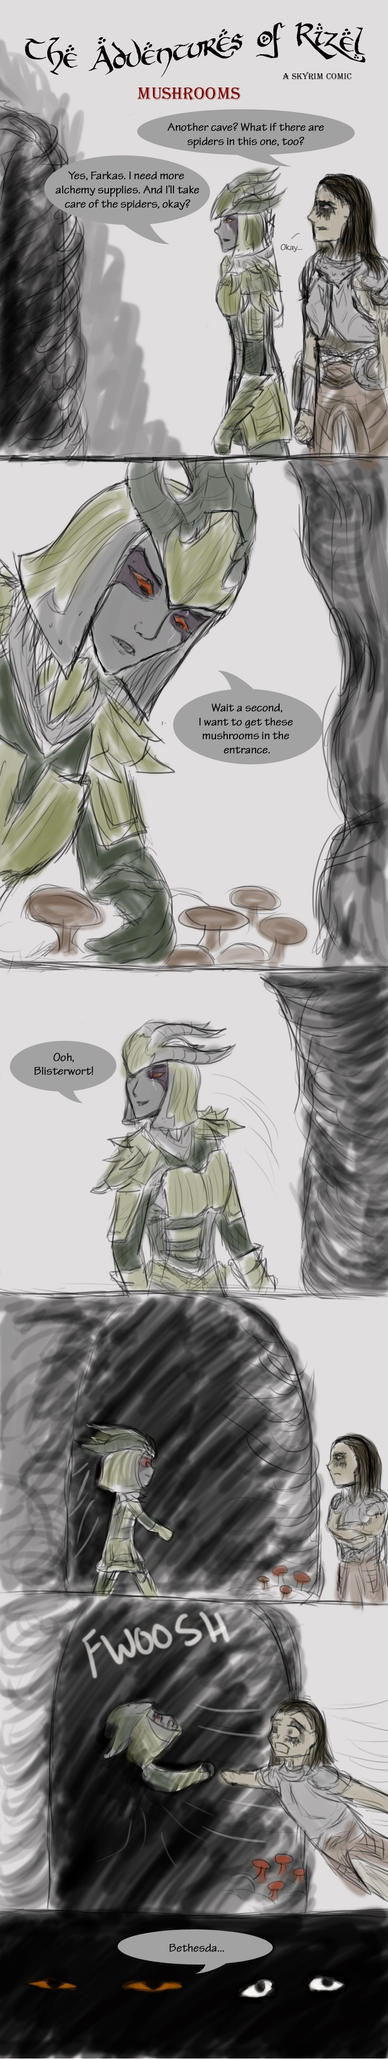 The Adventures of Rizel: Mushrooms by Nighthawk42